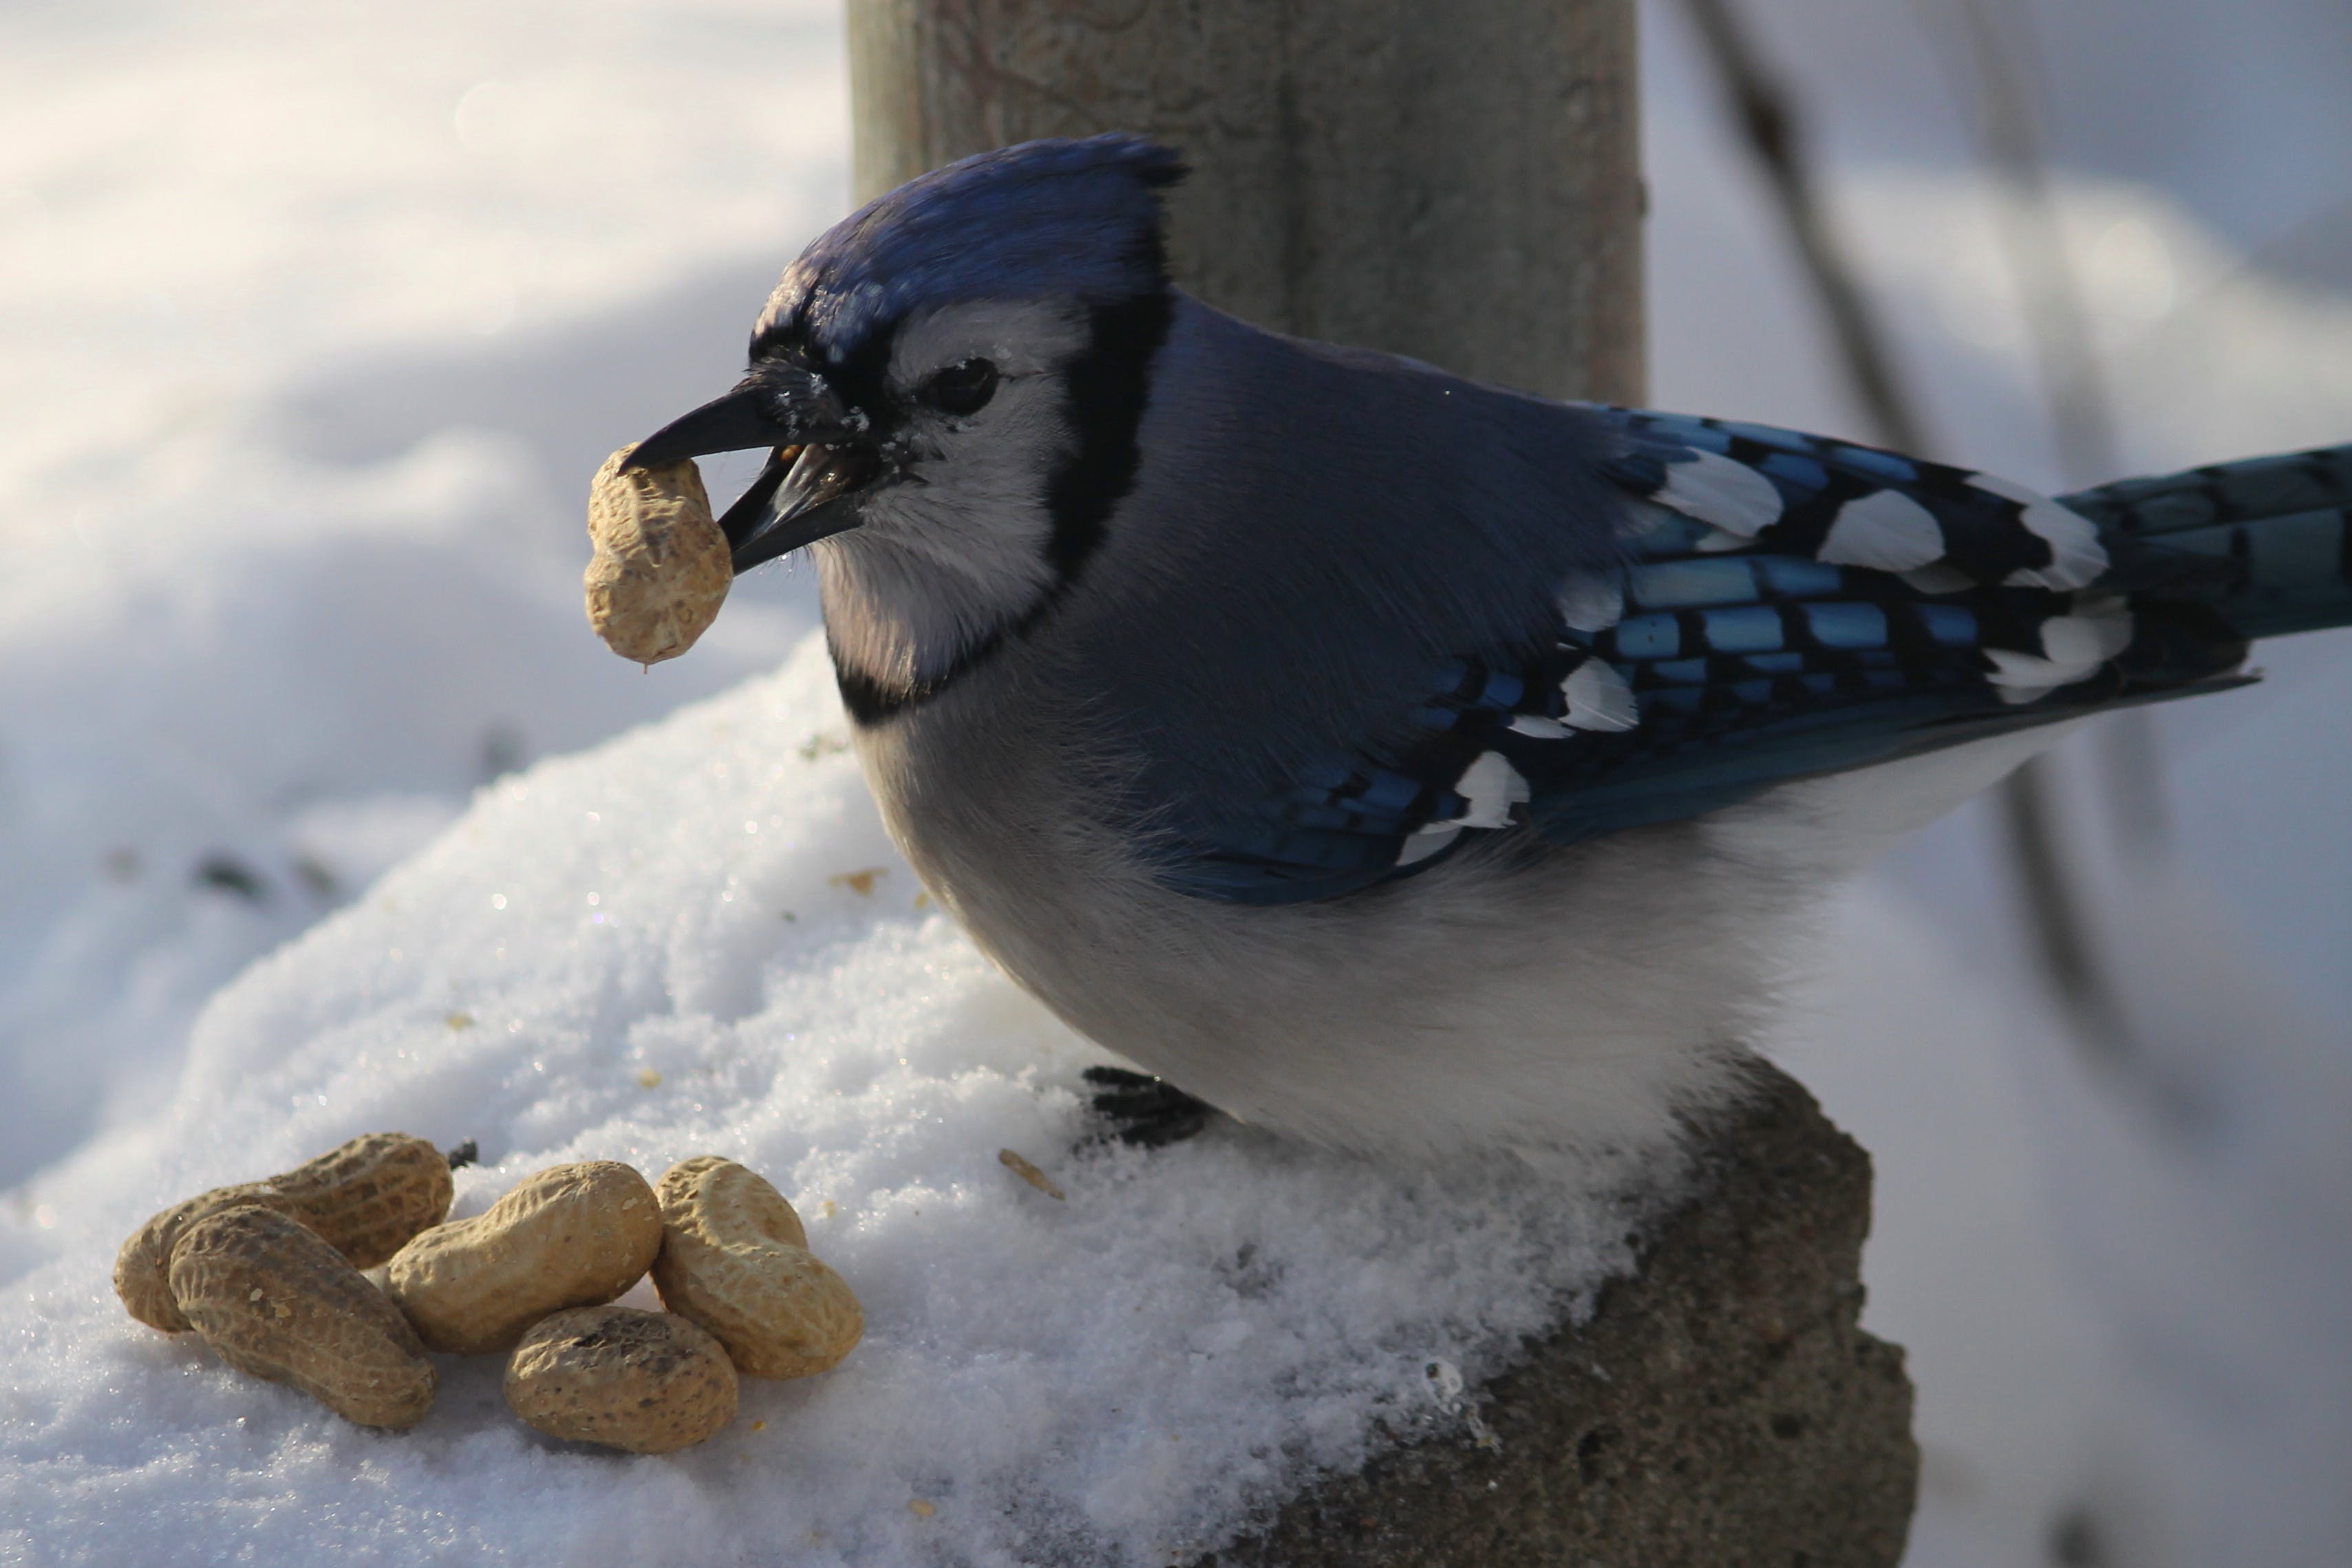 Free stock photo of birds, blue jay, nature photography, winter